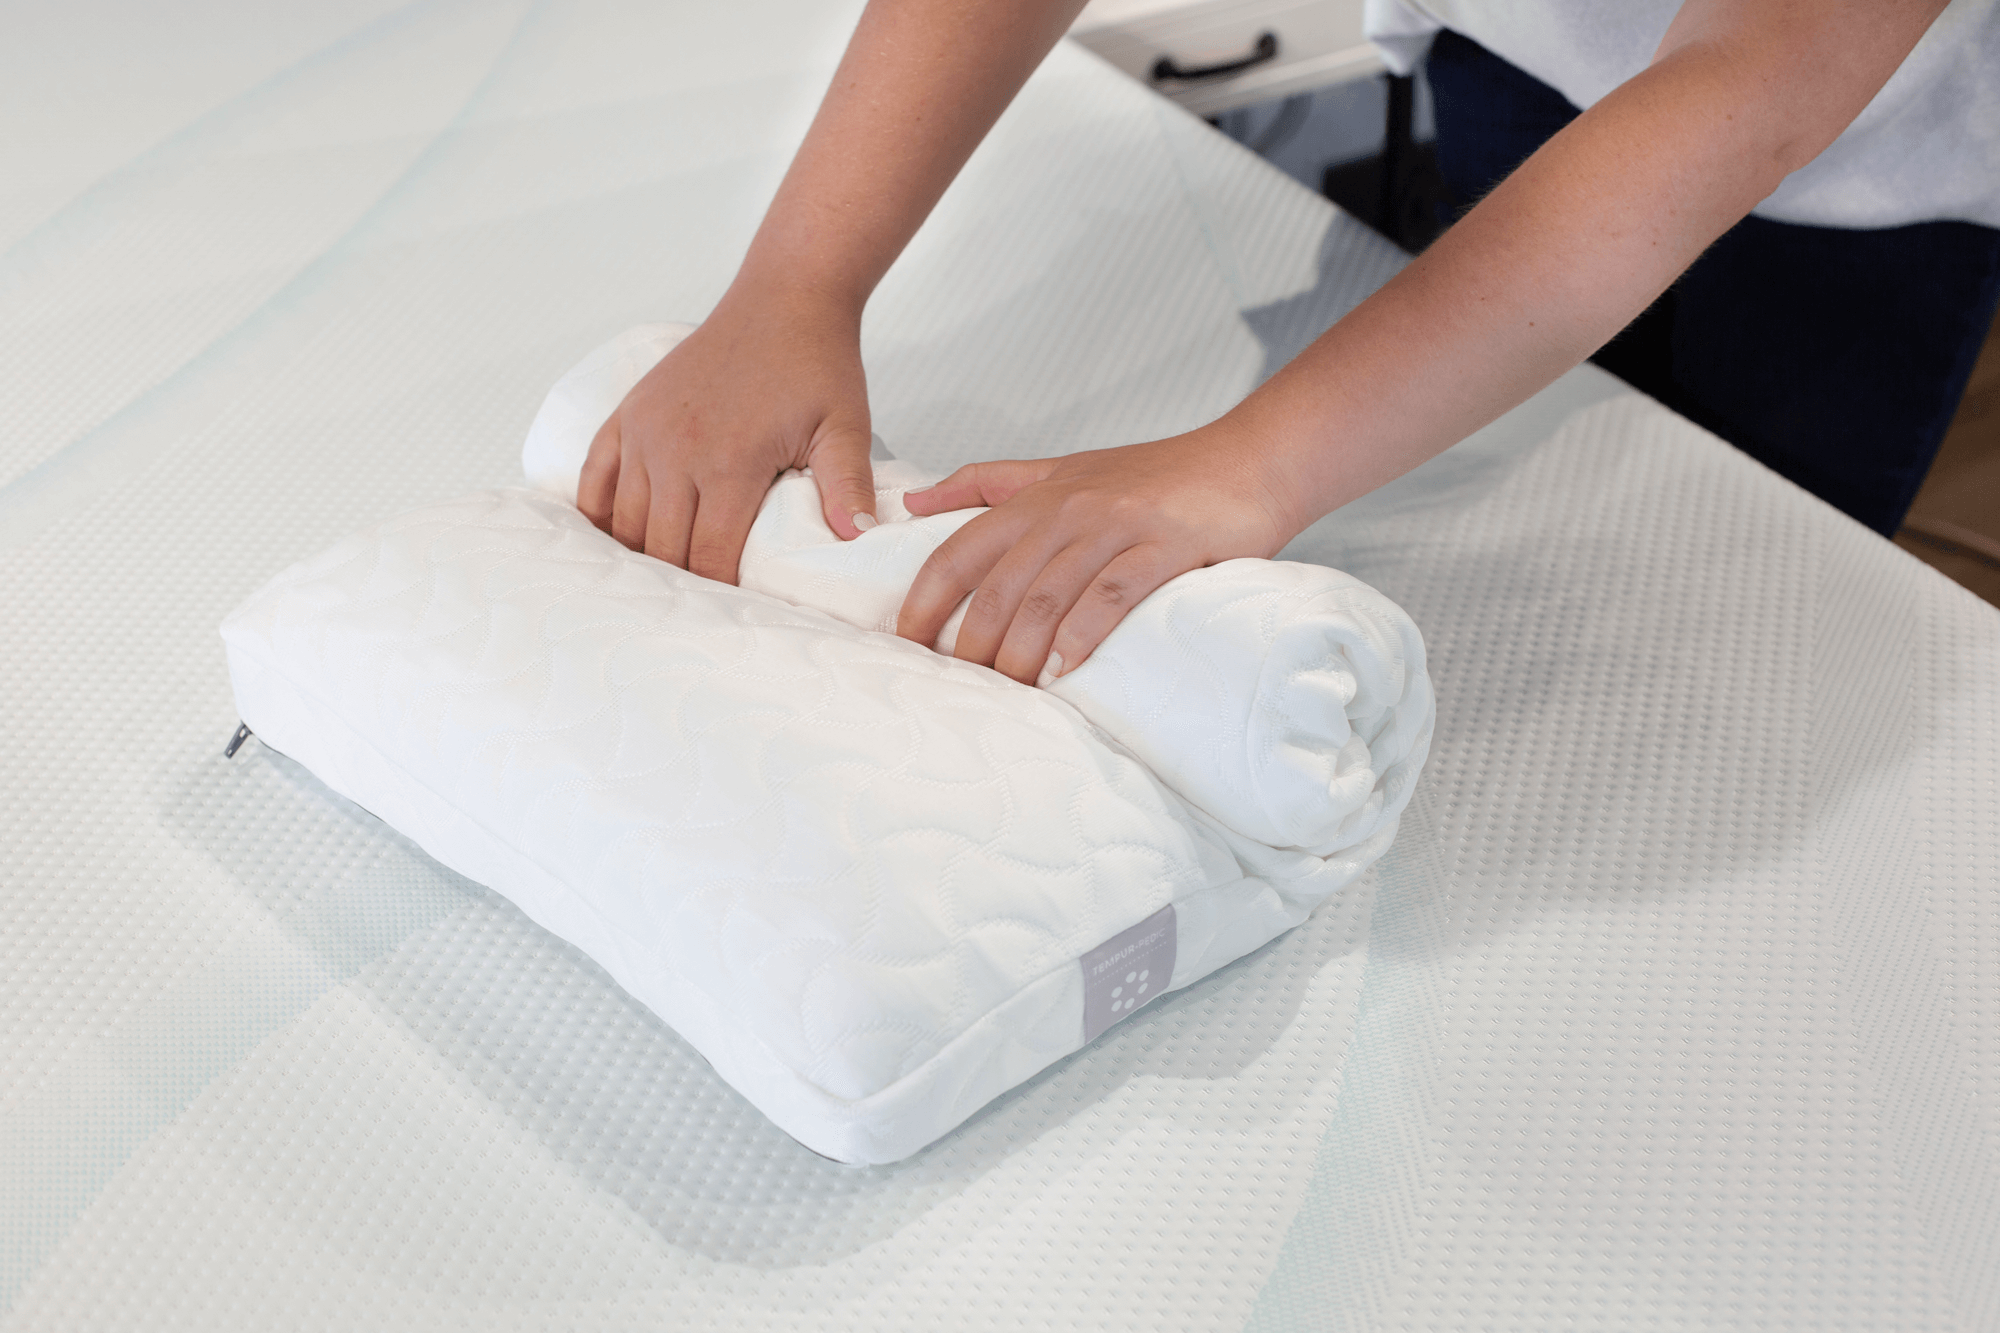 A Tempur-Cloud pillow being rolled up for easy packing